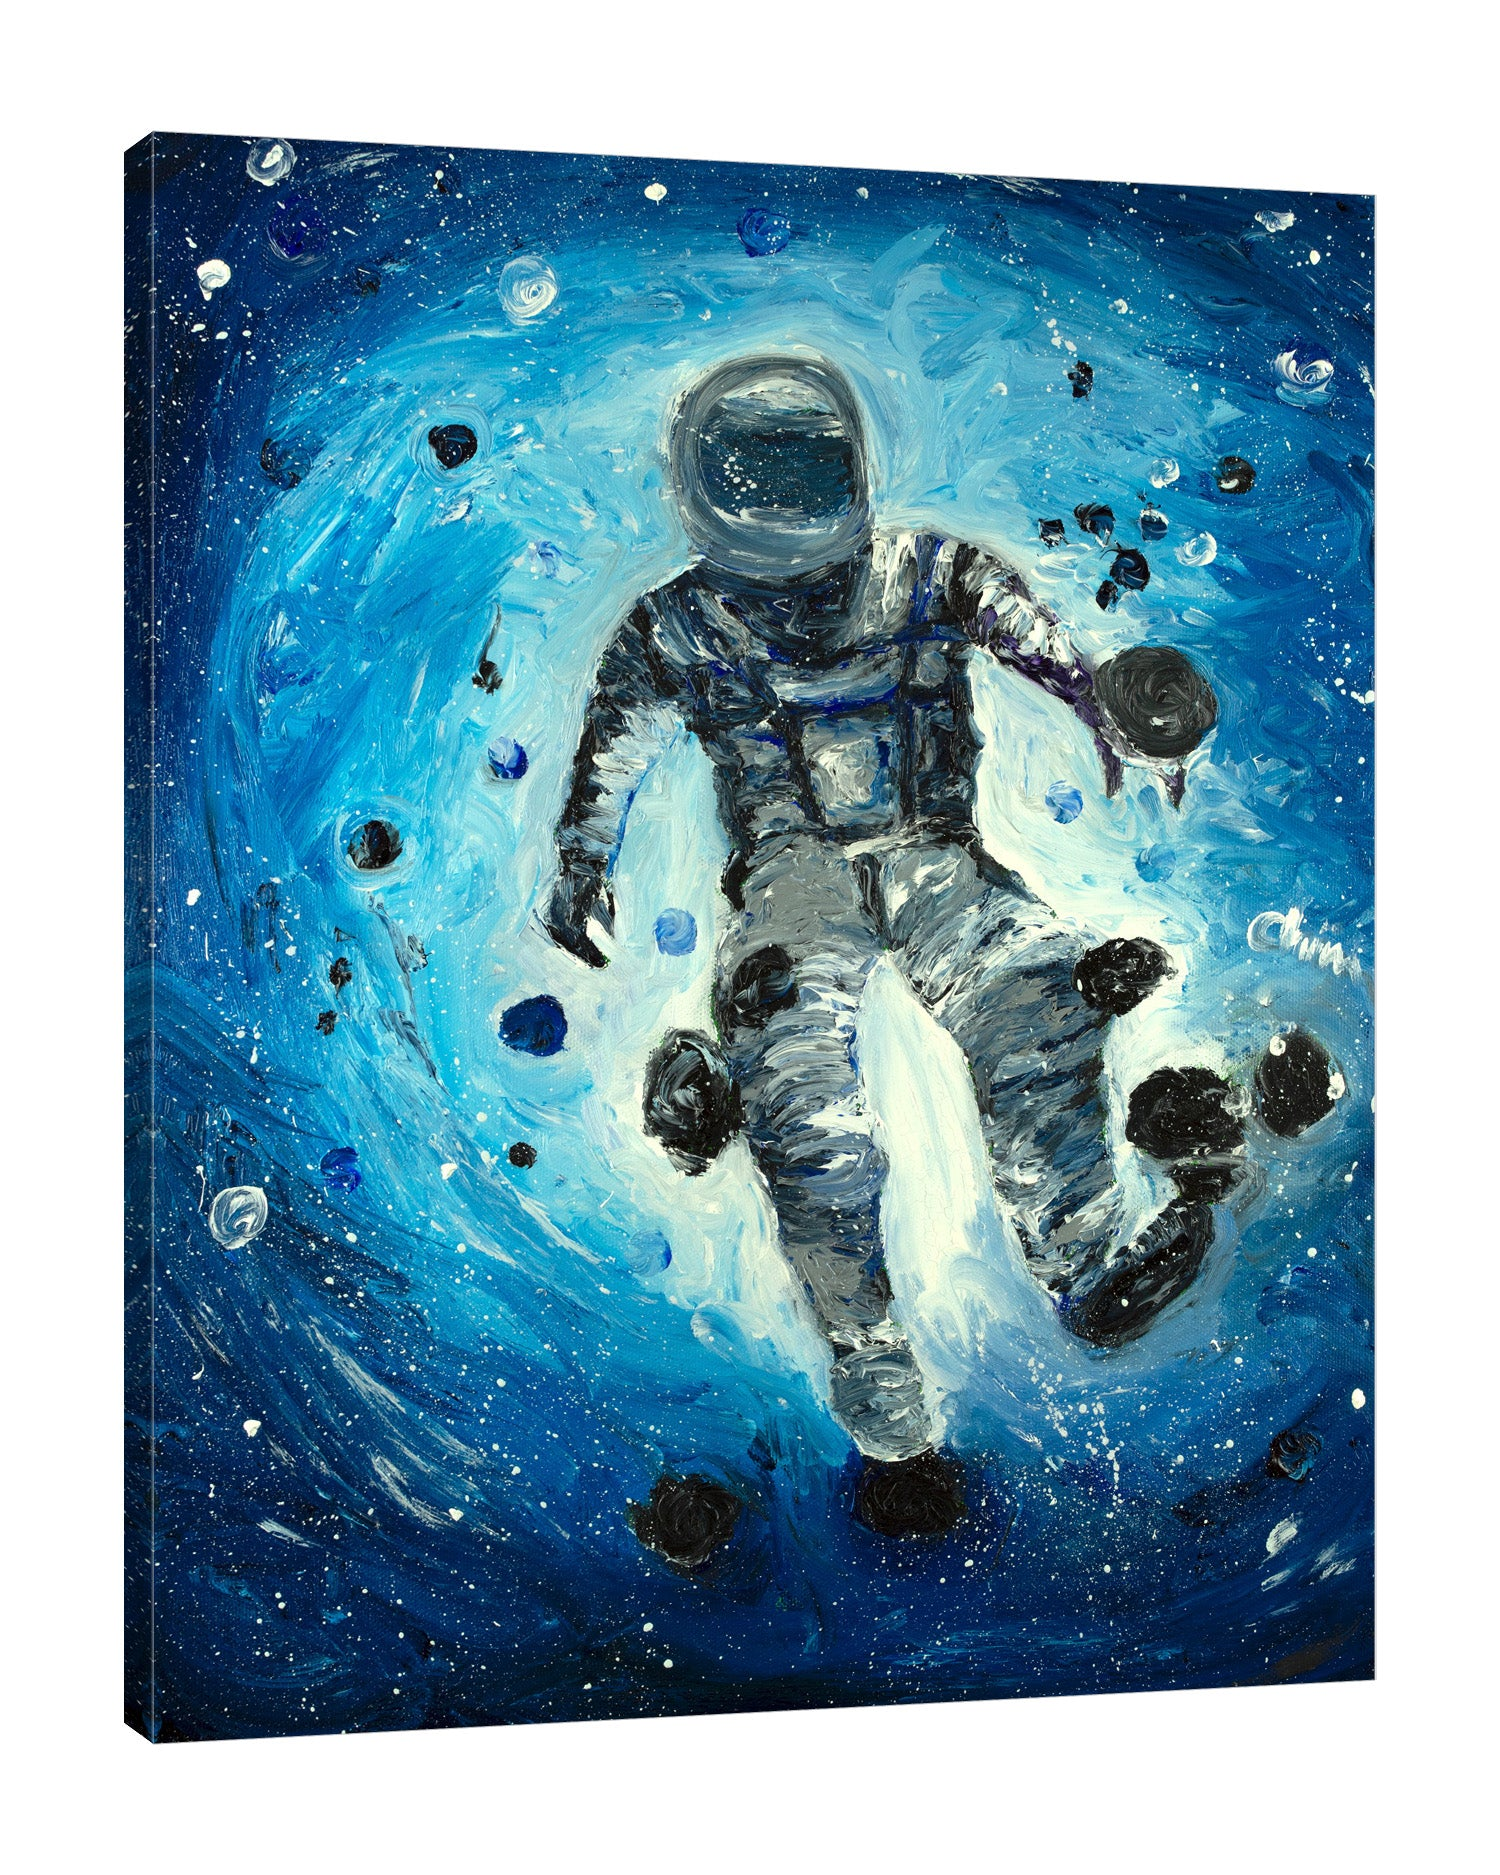 Chiara-Magni,Modern & Contemporary,Fantasy & Sci-Fi,People,Finger-paint,astronaut,astronauts,suits,rocks,galaxies,galaxy,rock,stars,space,blue,white,suit,